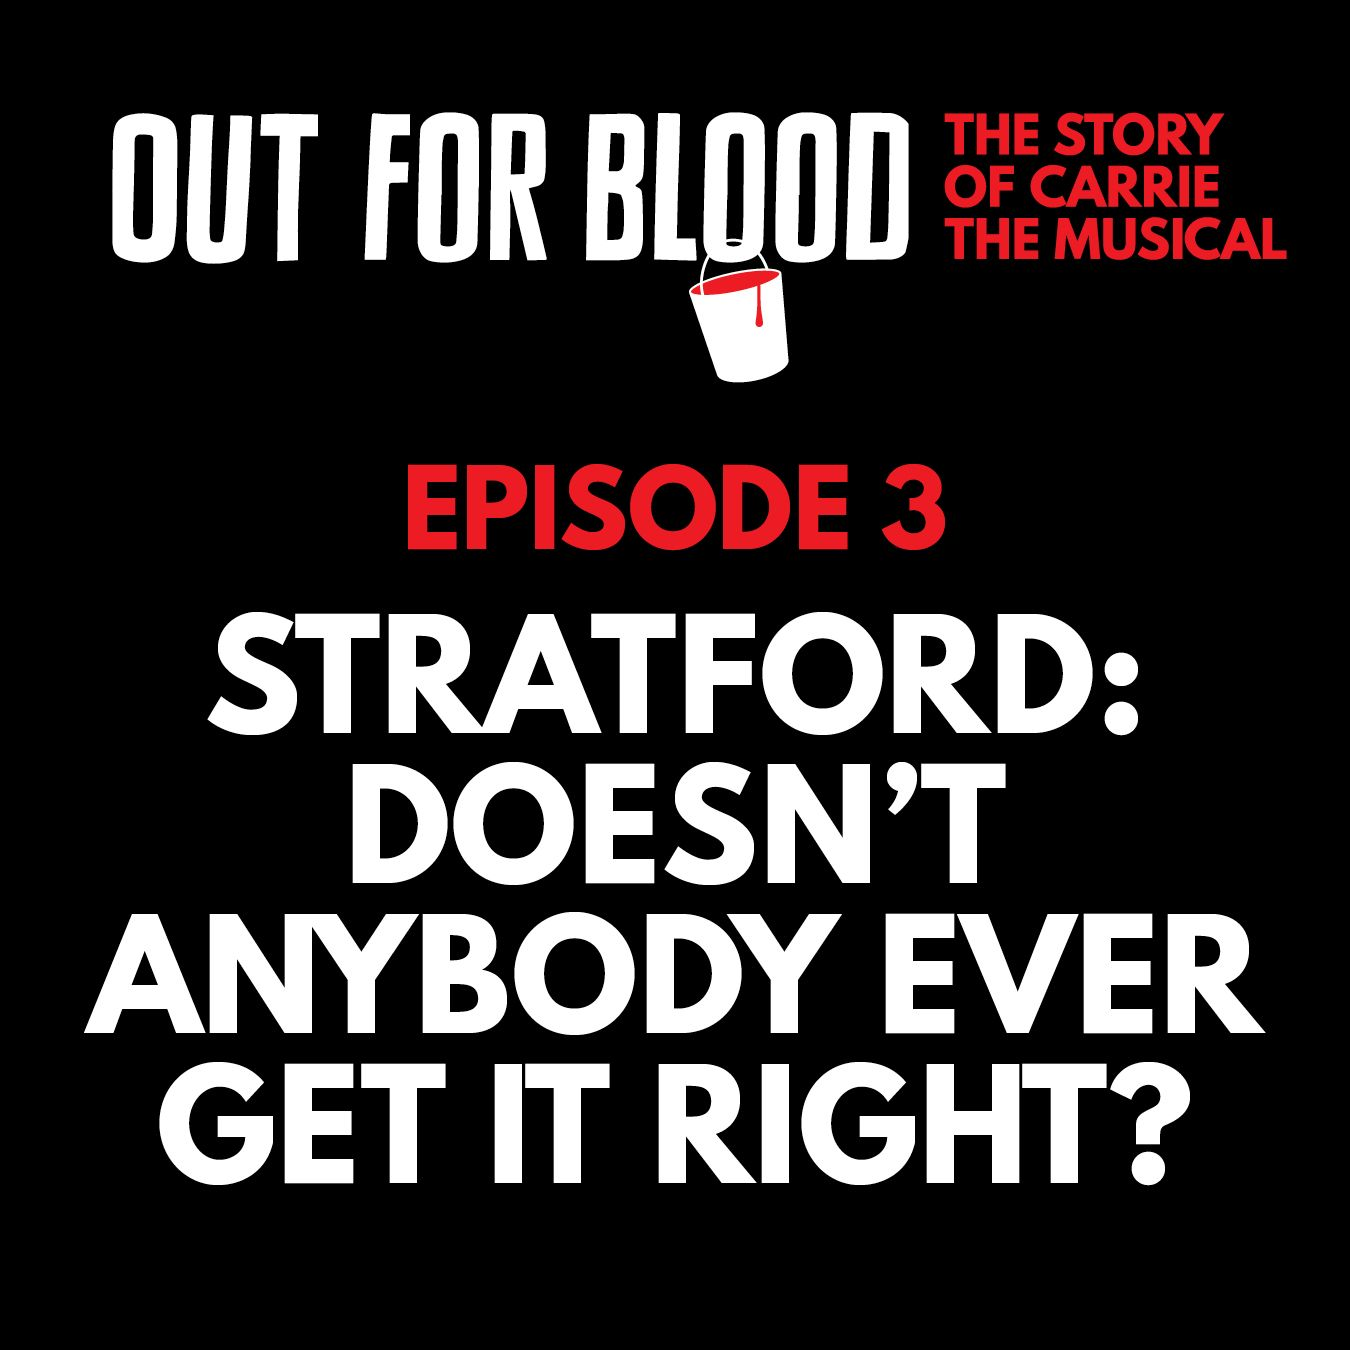 Chapter 3: Stratford: Doesn't anybody ever get it right?